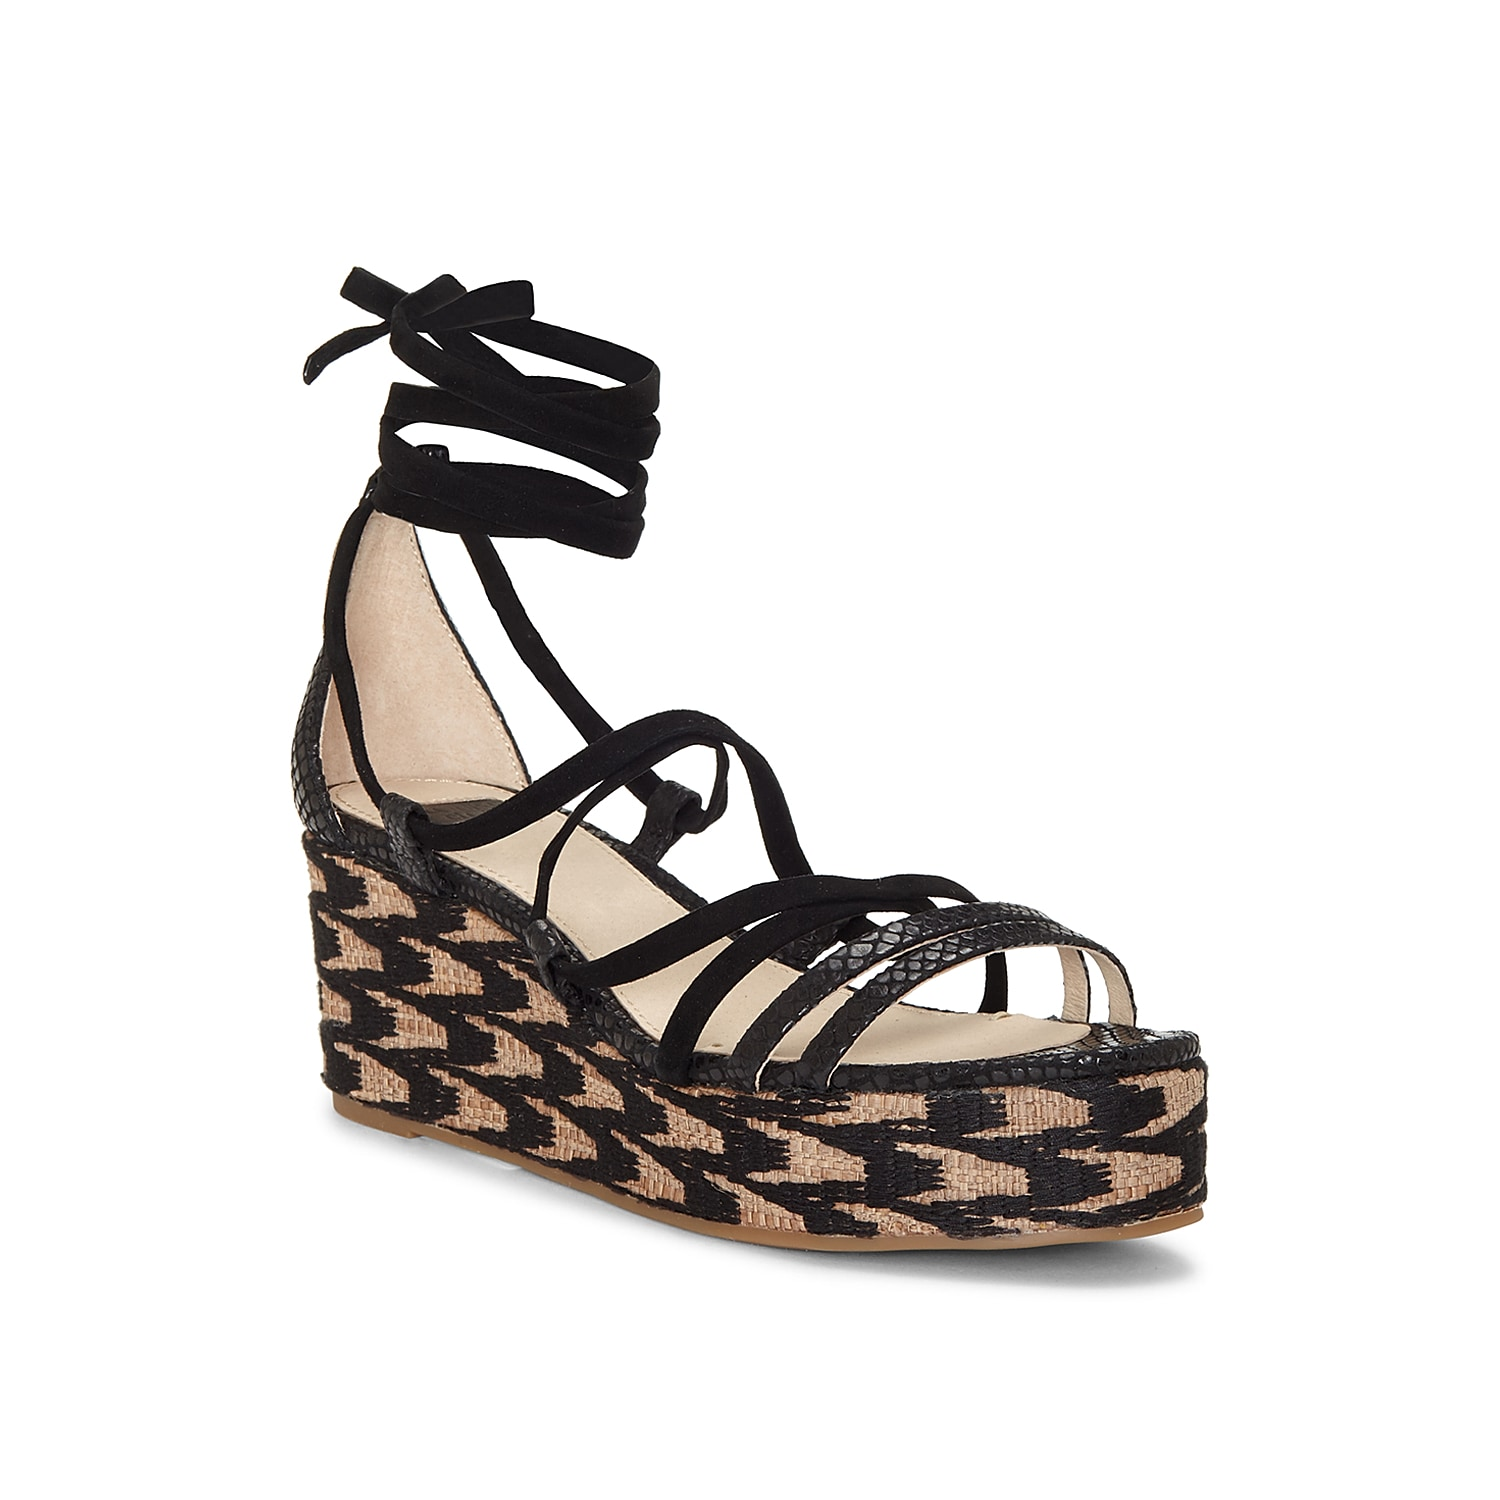 Spice up your shoe collection with the Renz wedge sandal from Louise Et Cie. This silhouette is fashioned with an espadrille heel and a wrap up ankle strap for eye-catching looks.